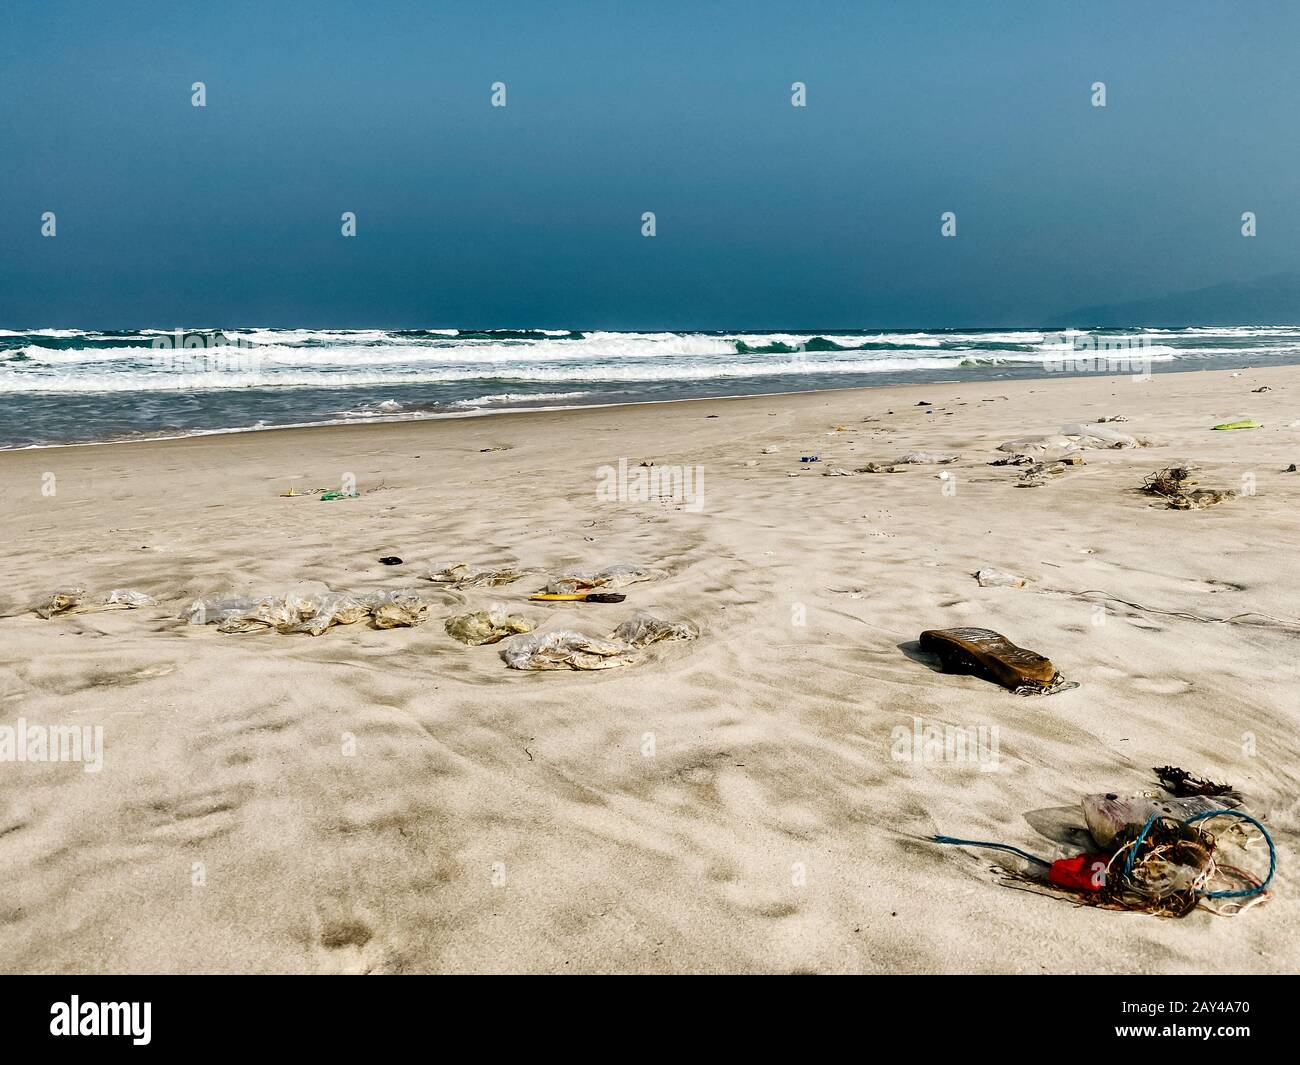 Plastic bottles and other rubbish thrown on the sandy seashore, trash on the sea beach. ecological problem. Environmental pollution. Dirty sandy beach Stock Photo